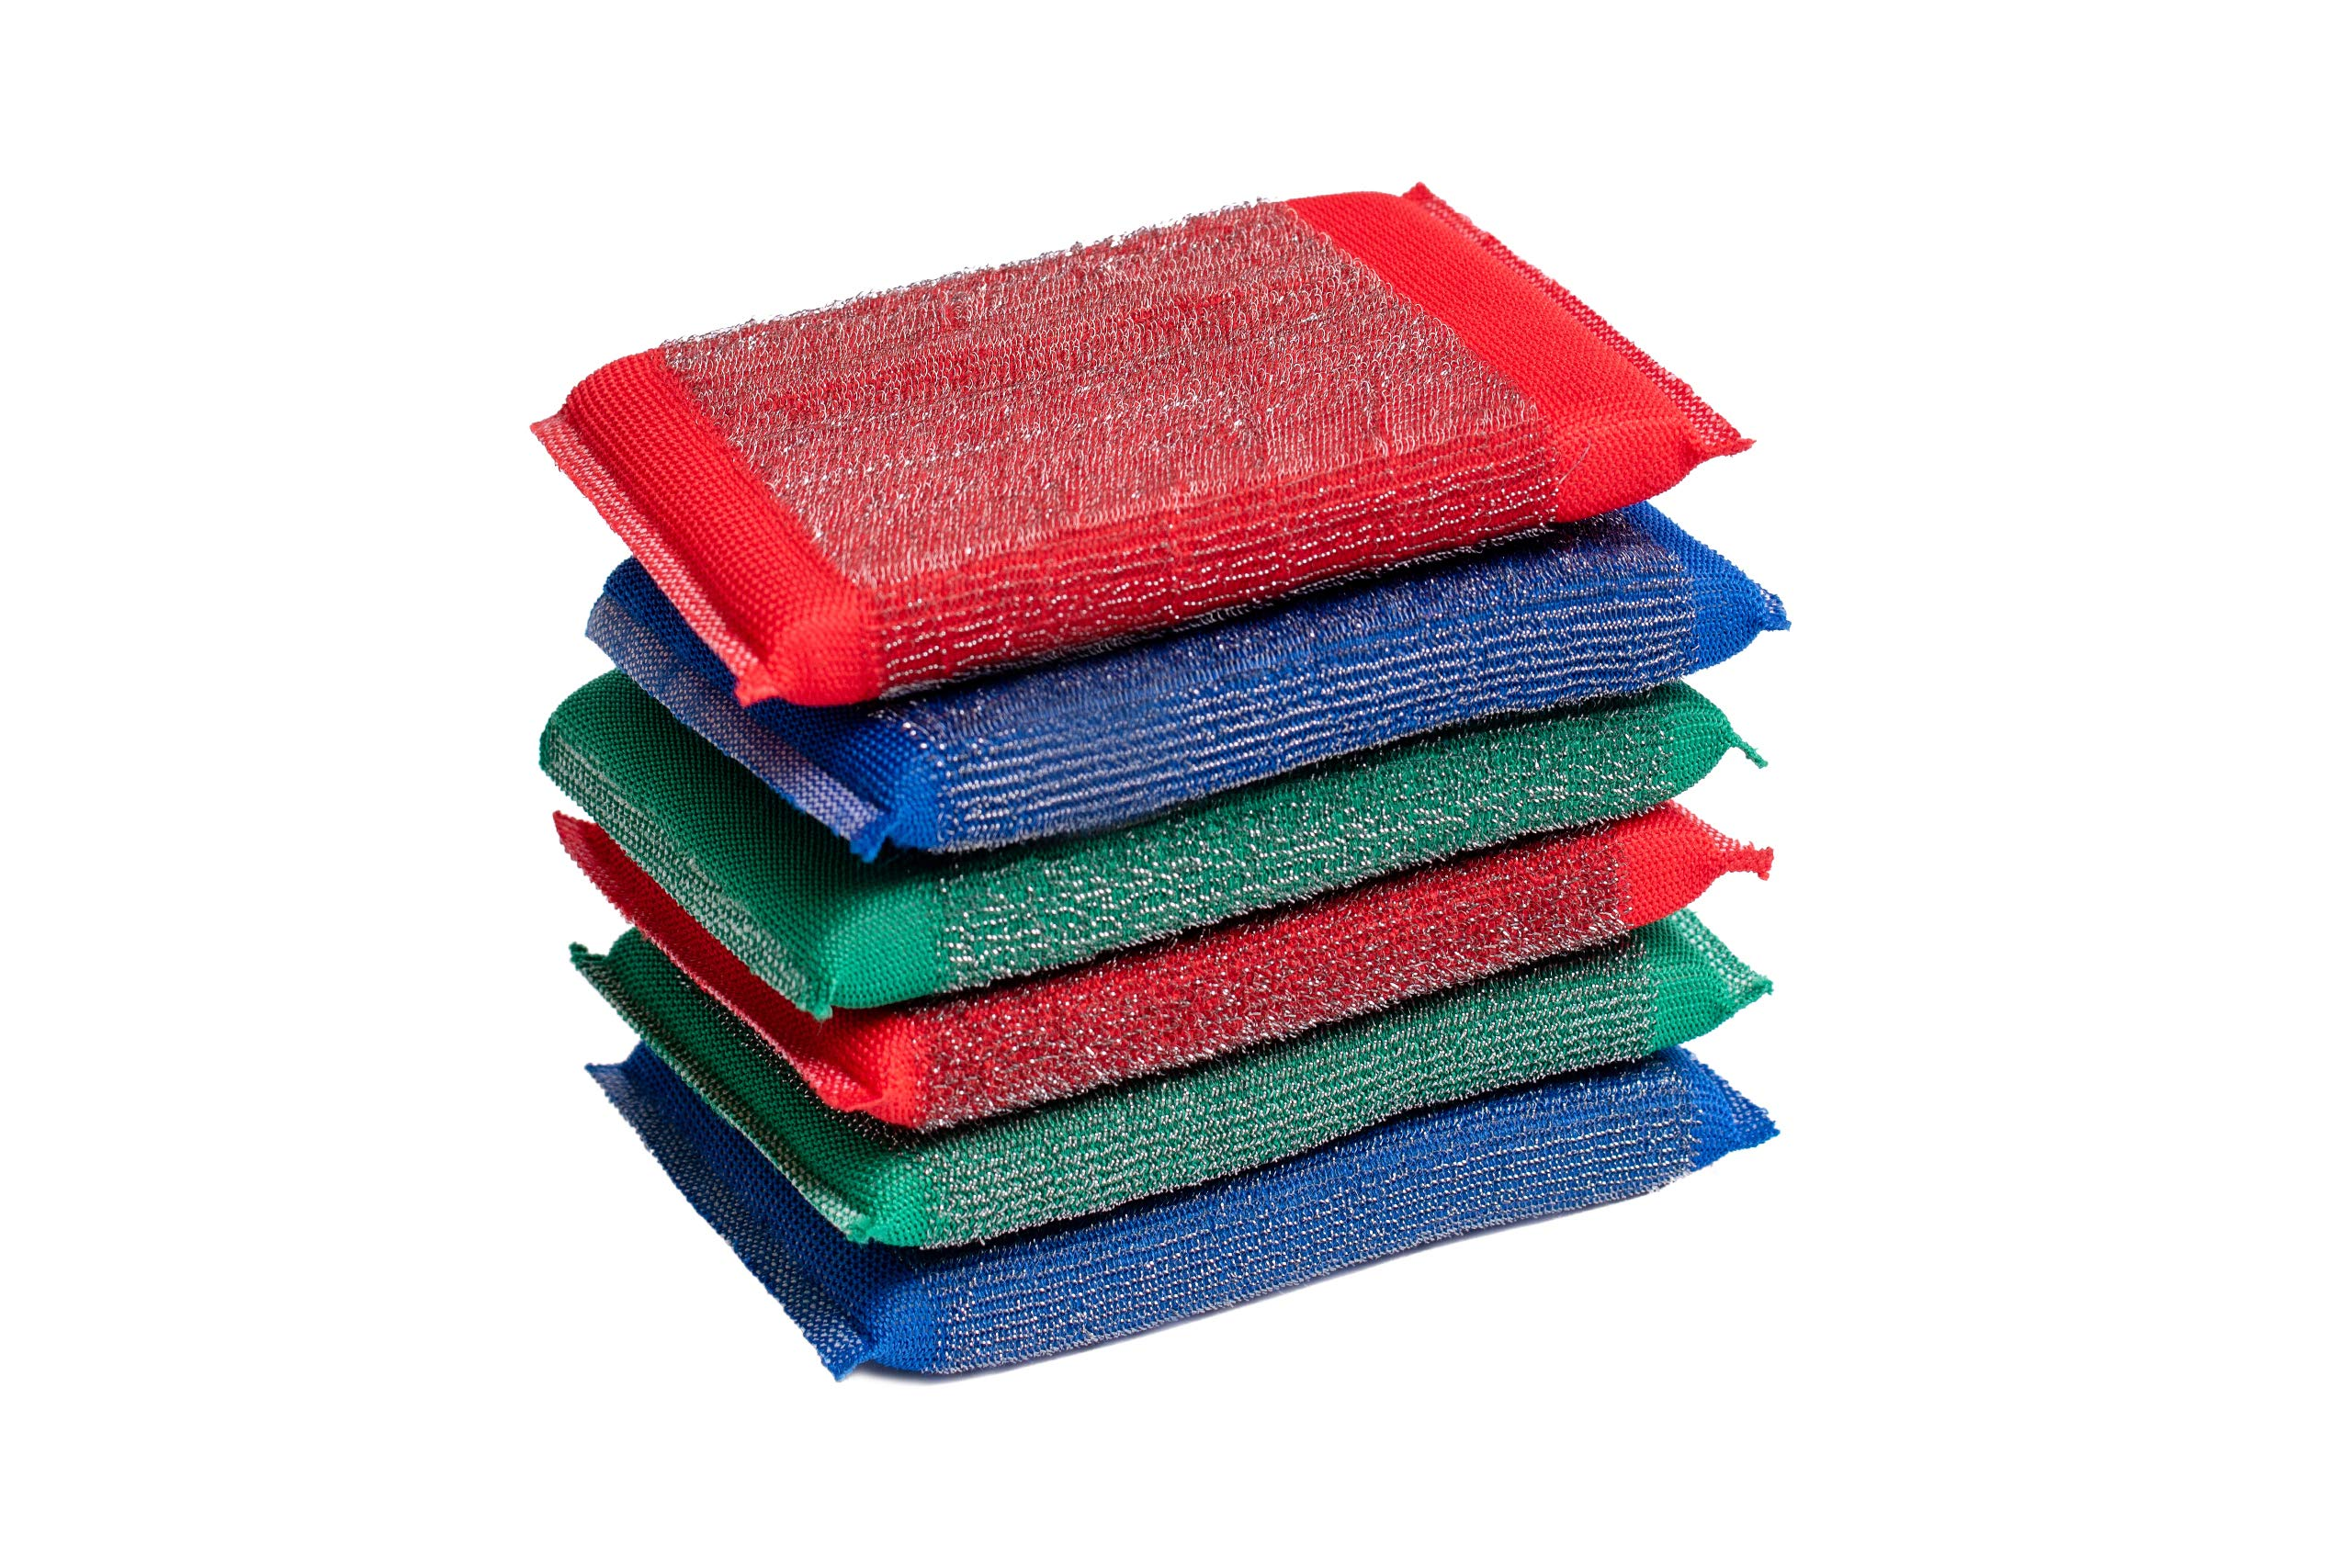 Blue & Green Iron Scouring Pads – Incredibly Tough, Heavy Duty & Long-Lasting Scrubbing Sponges. for Pots, BBQ Grills, Microwaves & Stovetops (6)